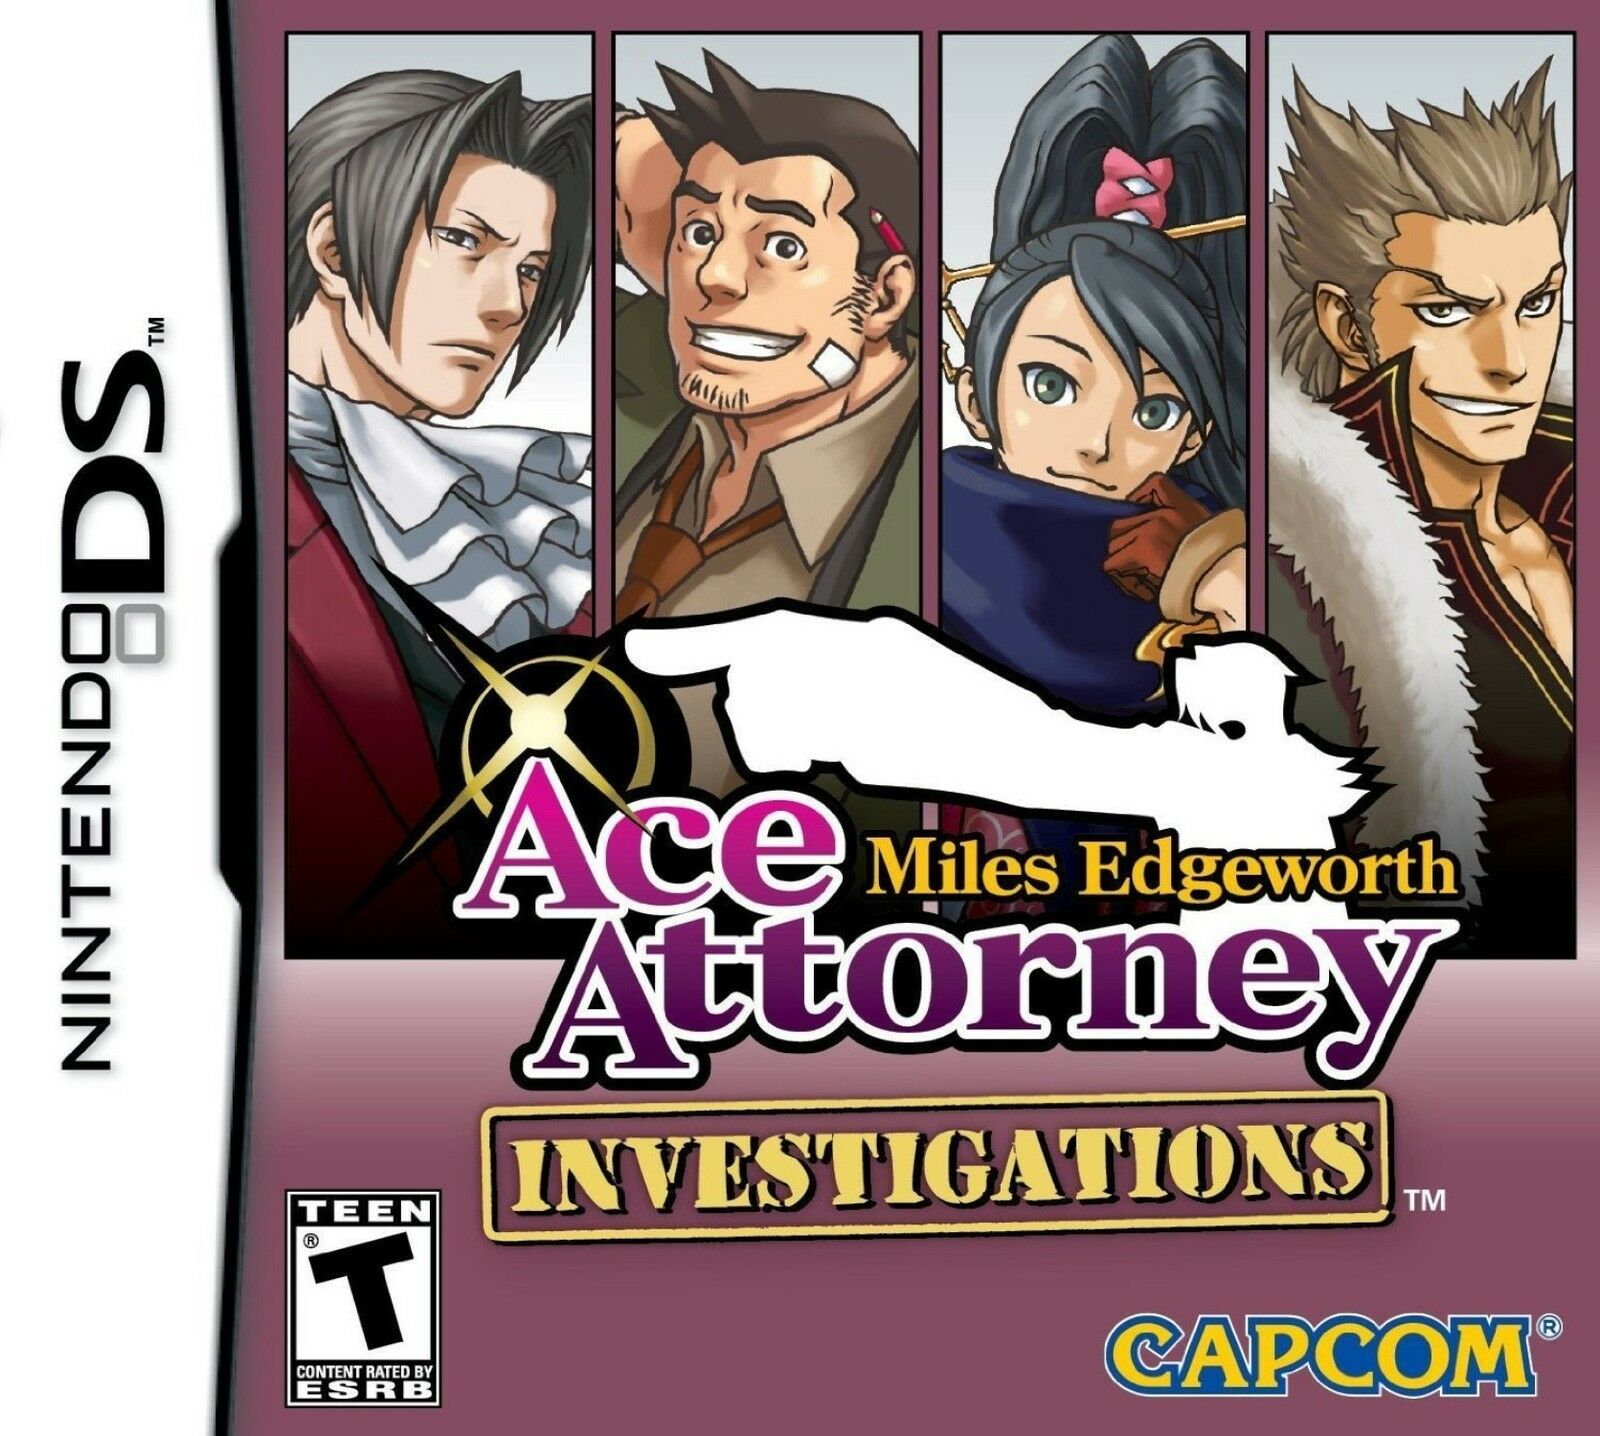 Ace Attorney Investigations: Miles Edgeworth Nintendo DS Game Brand New 1